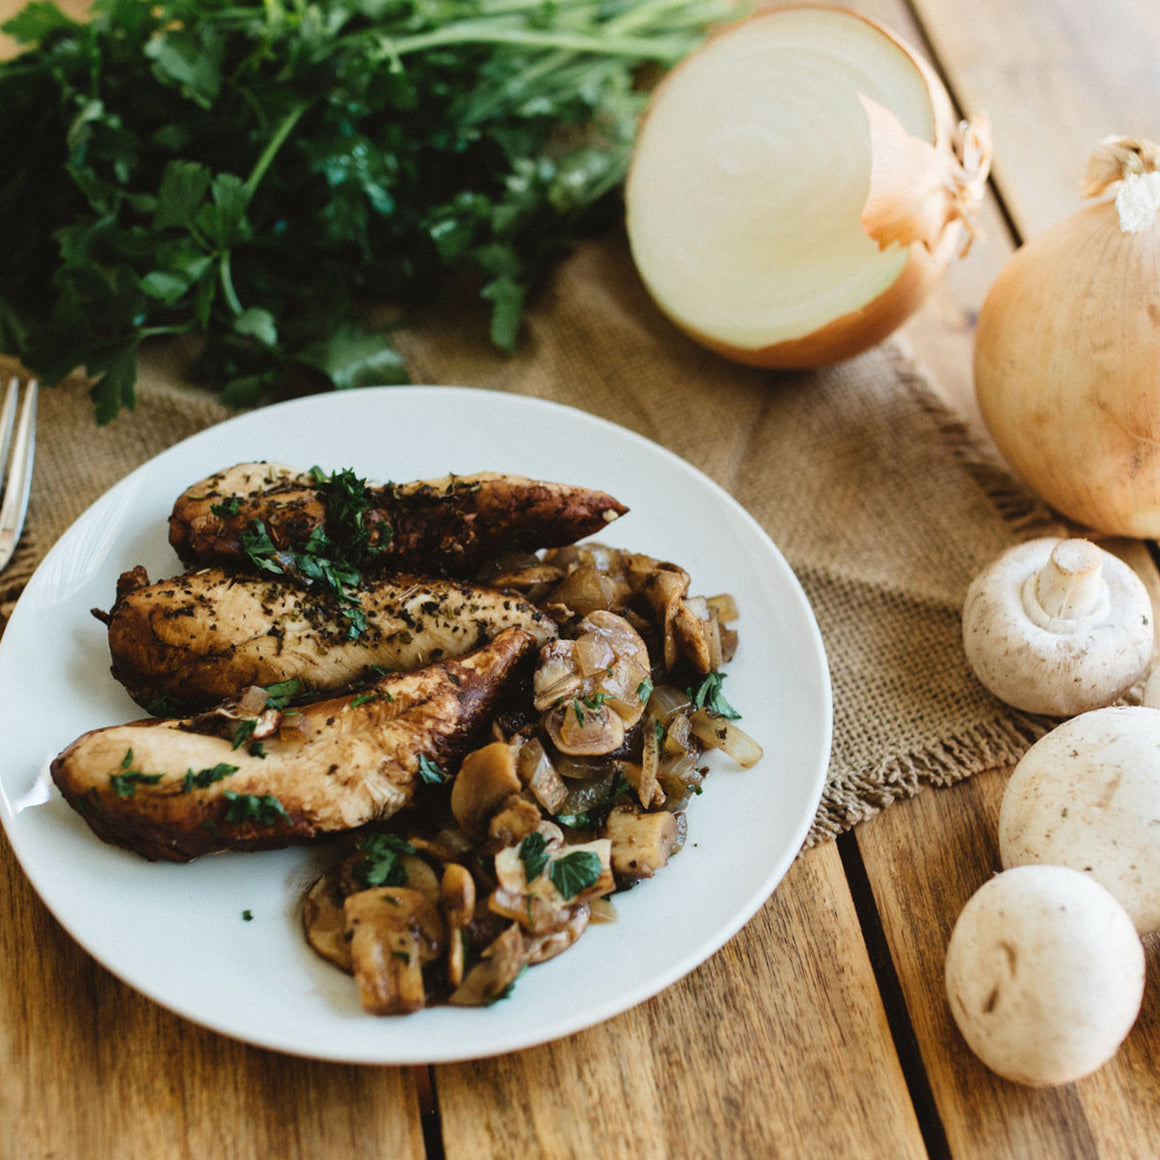 Pan-seared balsamic chicken & mushrooms (W30)